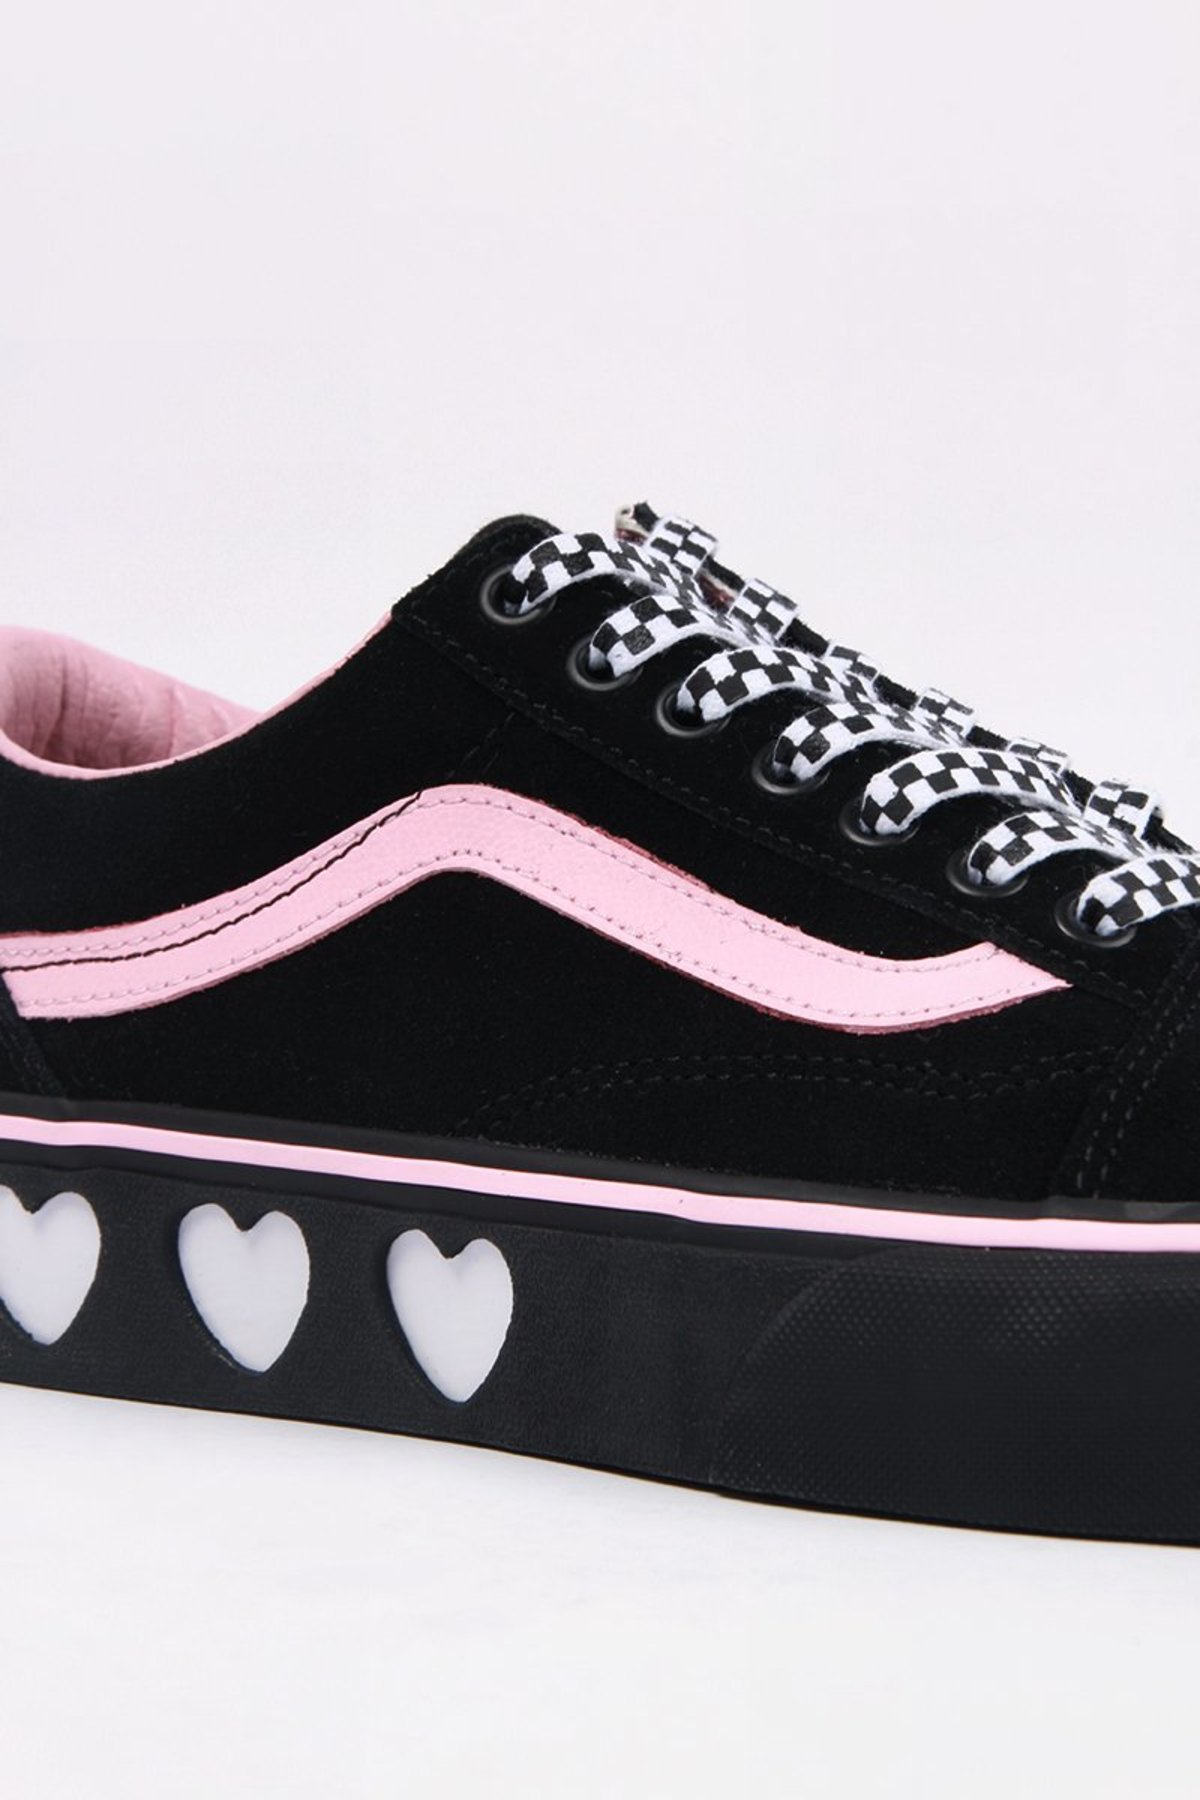 Vans X Lazy Oaf Old Skool Platform Shoes - Black  92dd29731